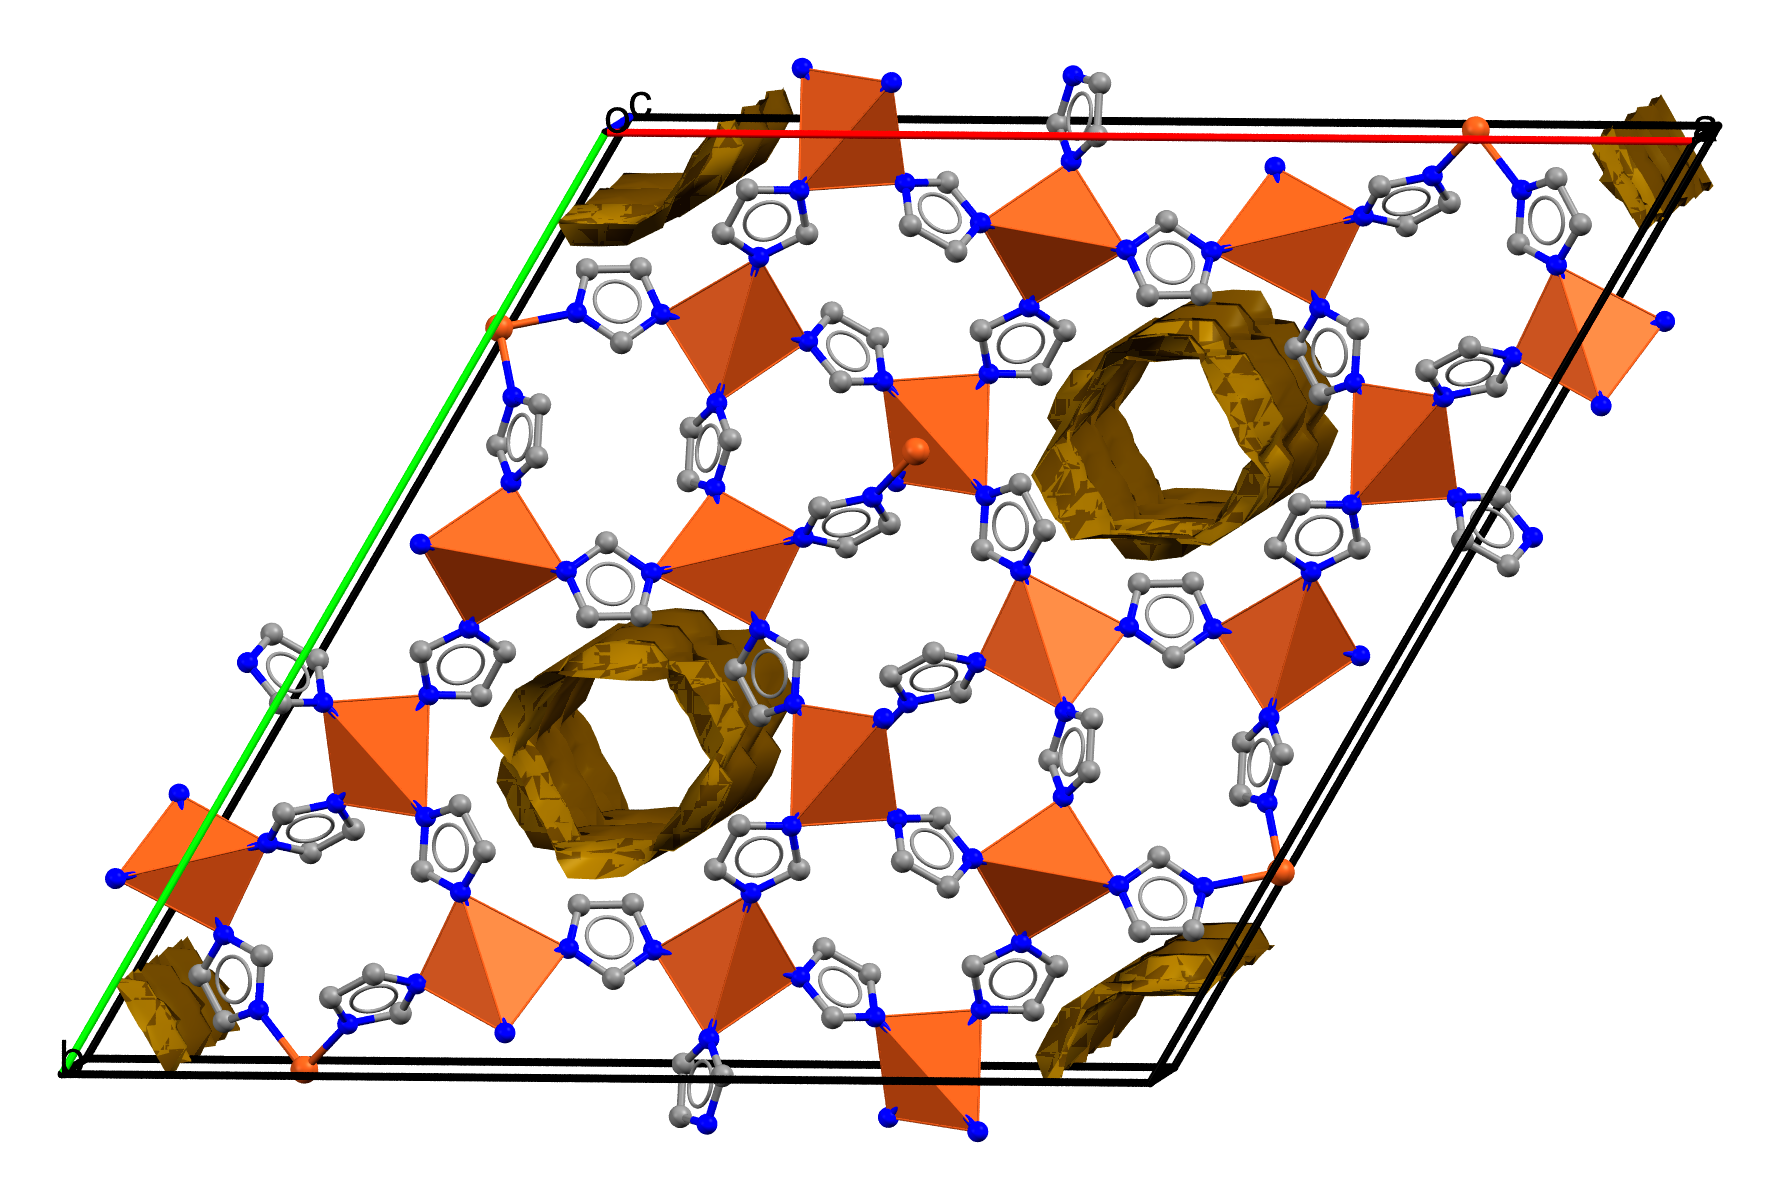 Polyhedral representation of a polymorph of a copper zeolitic imidazolate framework